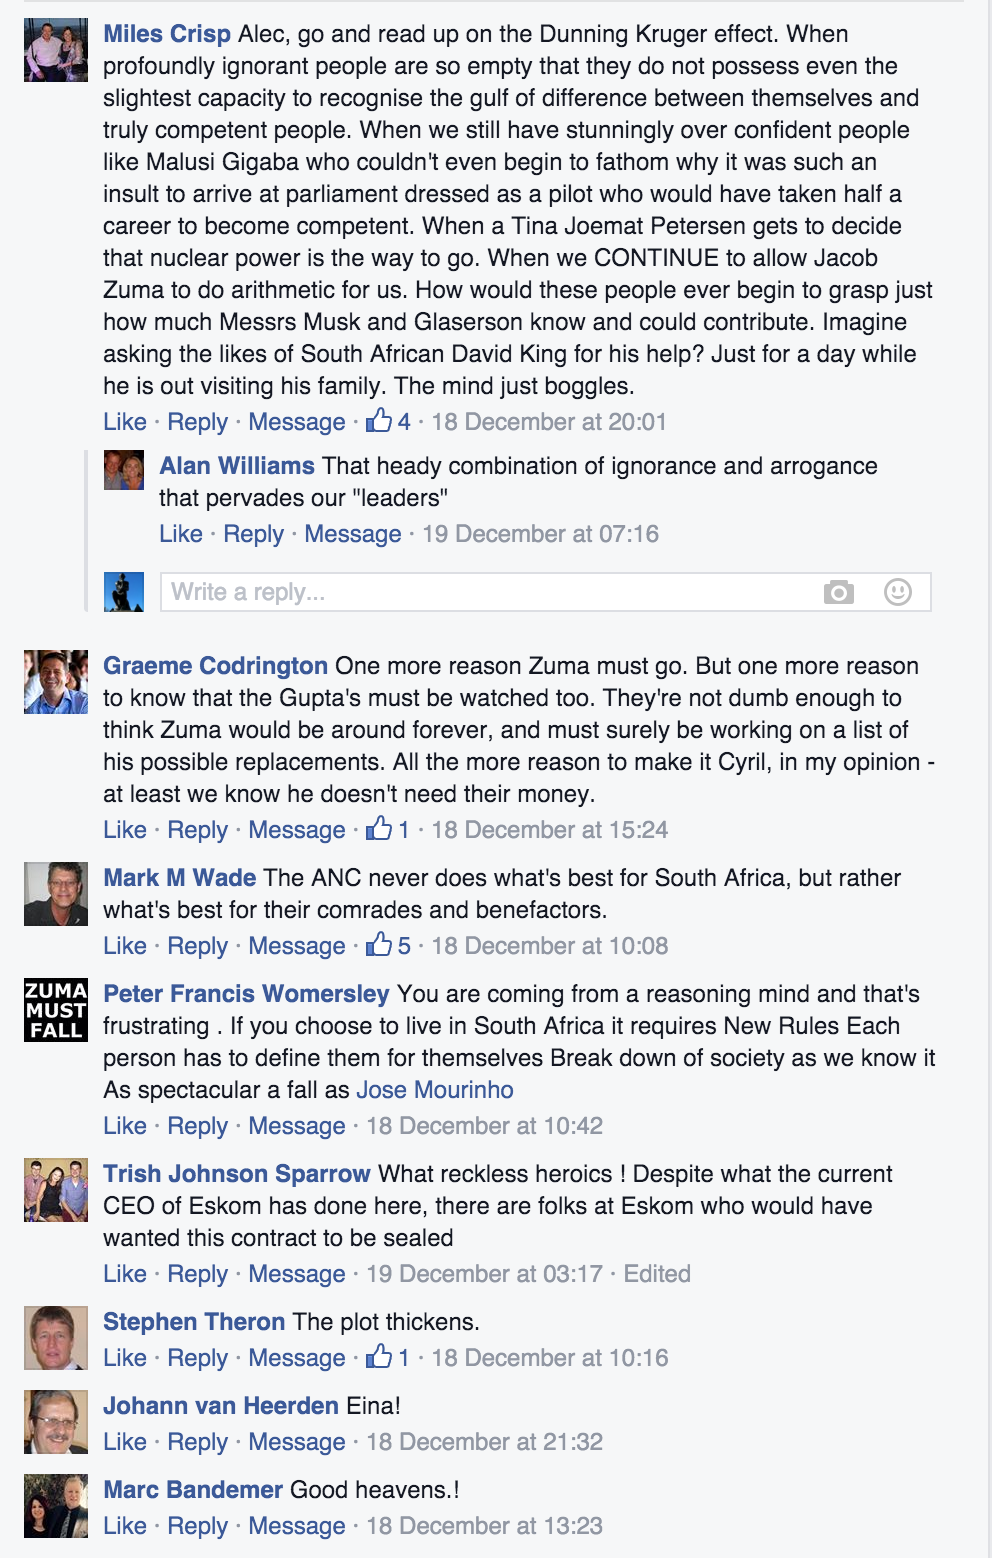 Some of the comments posted under the link to this story on Alec Hogg's Facebook page.